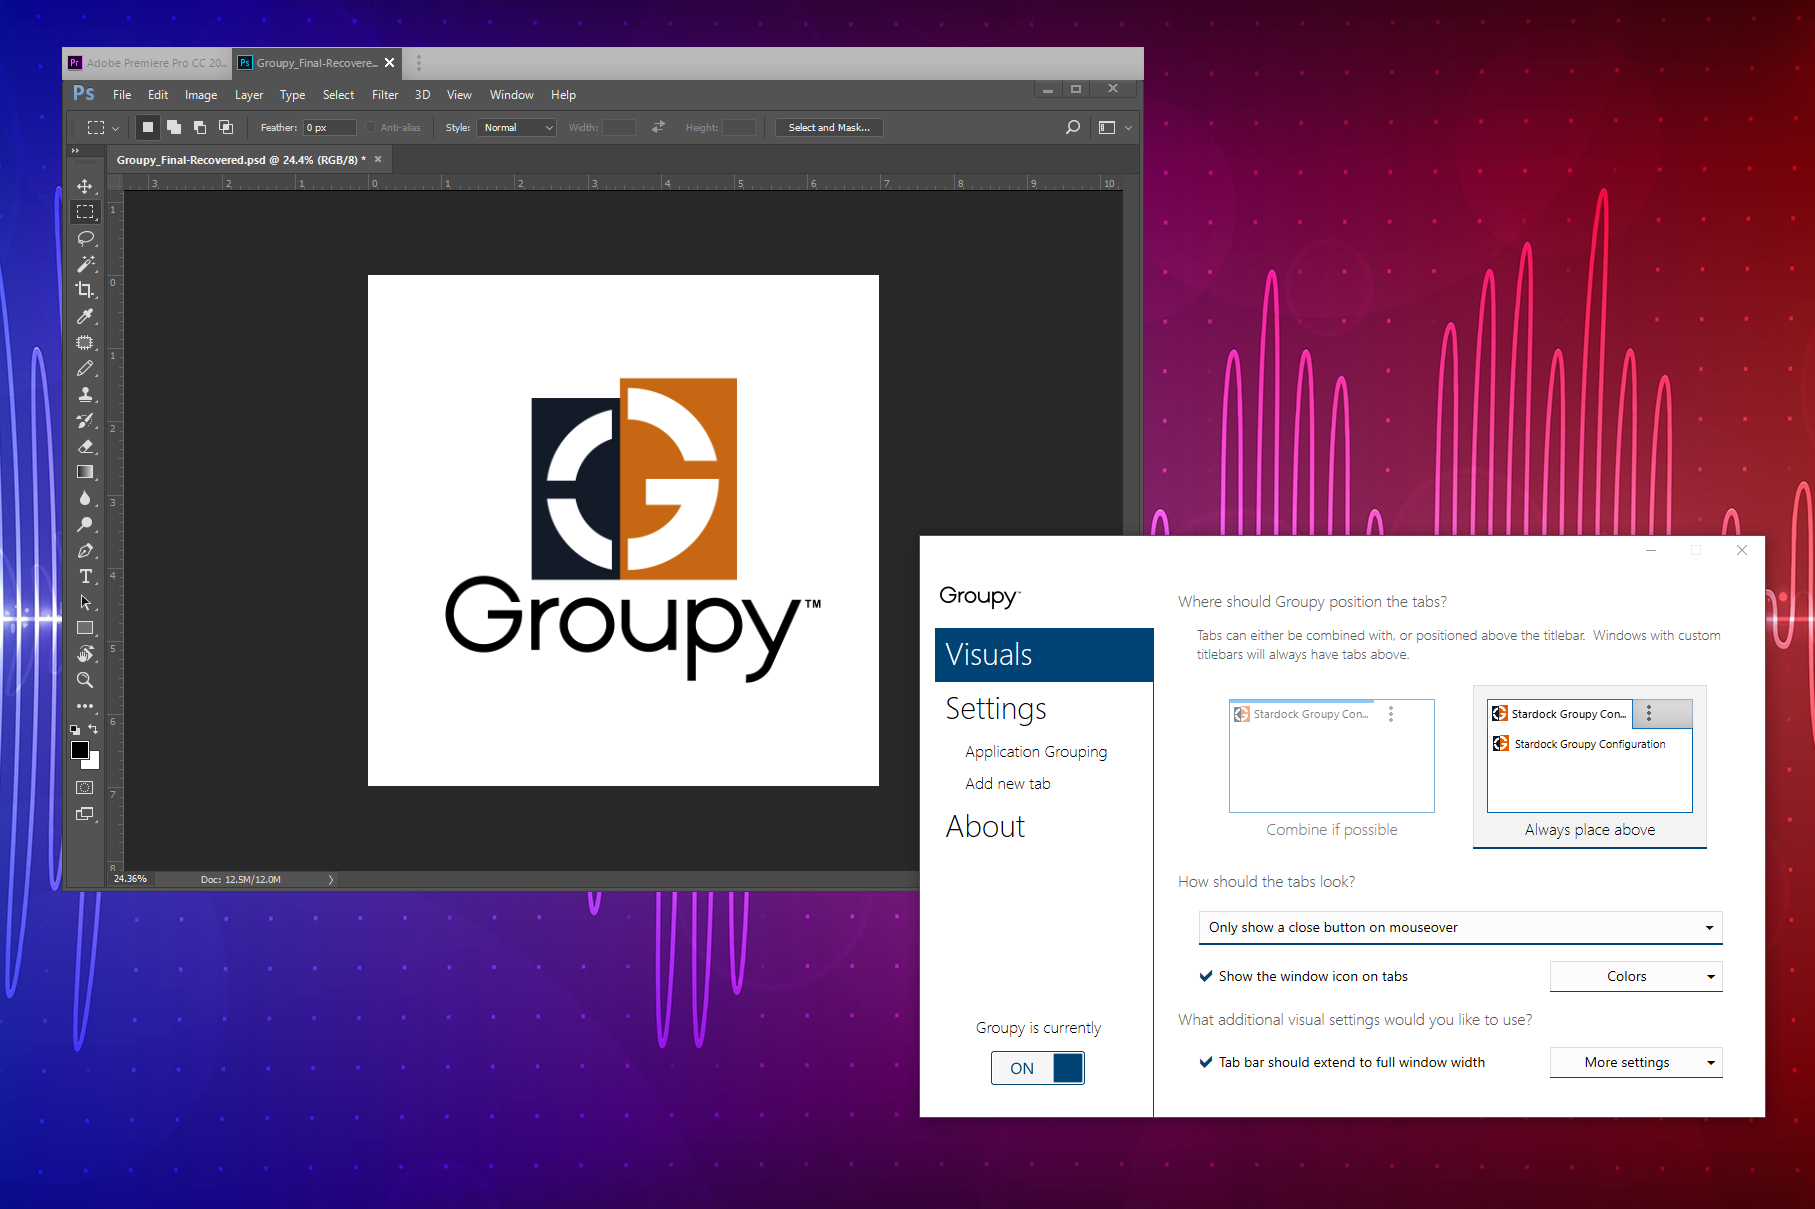 groupy Software Latest Version With Activation key free download 2020